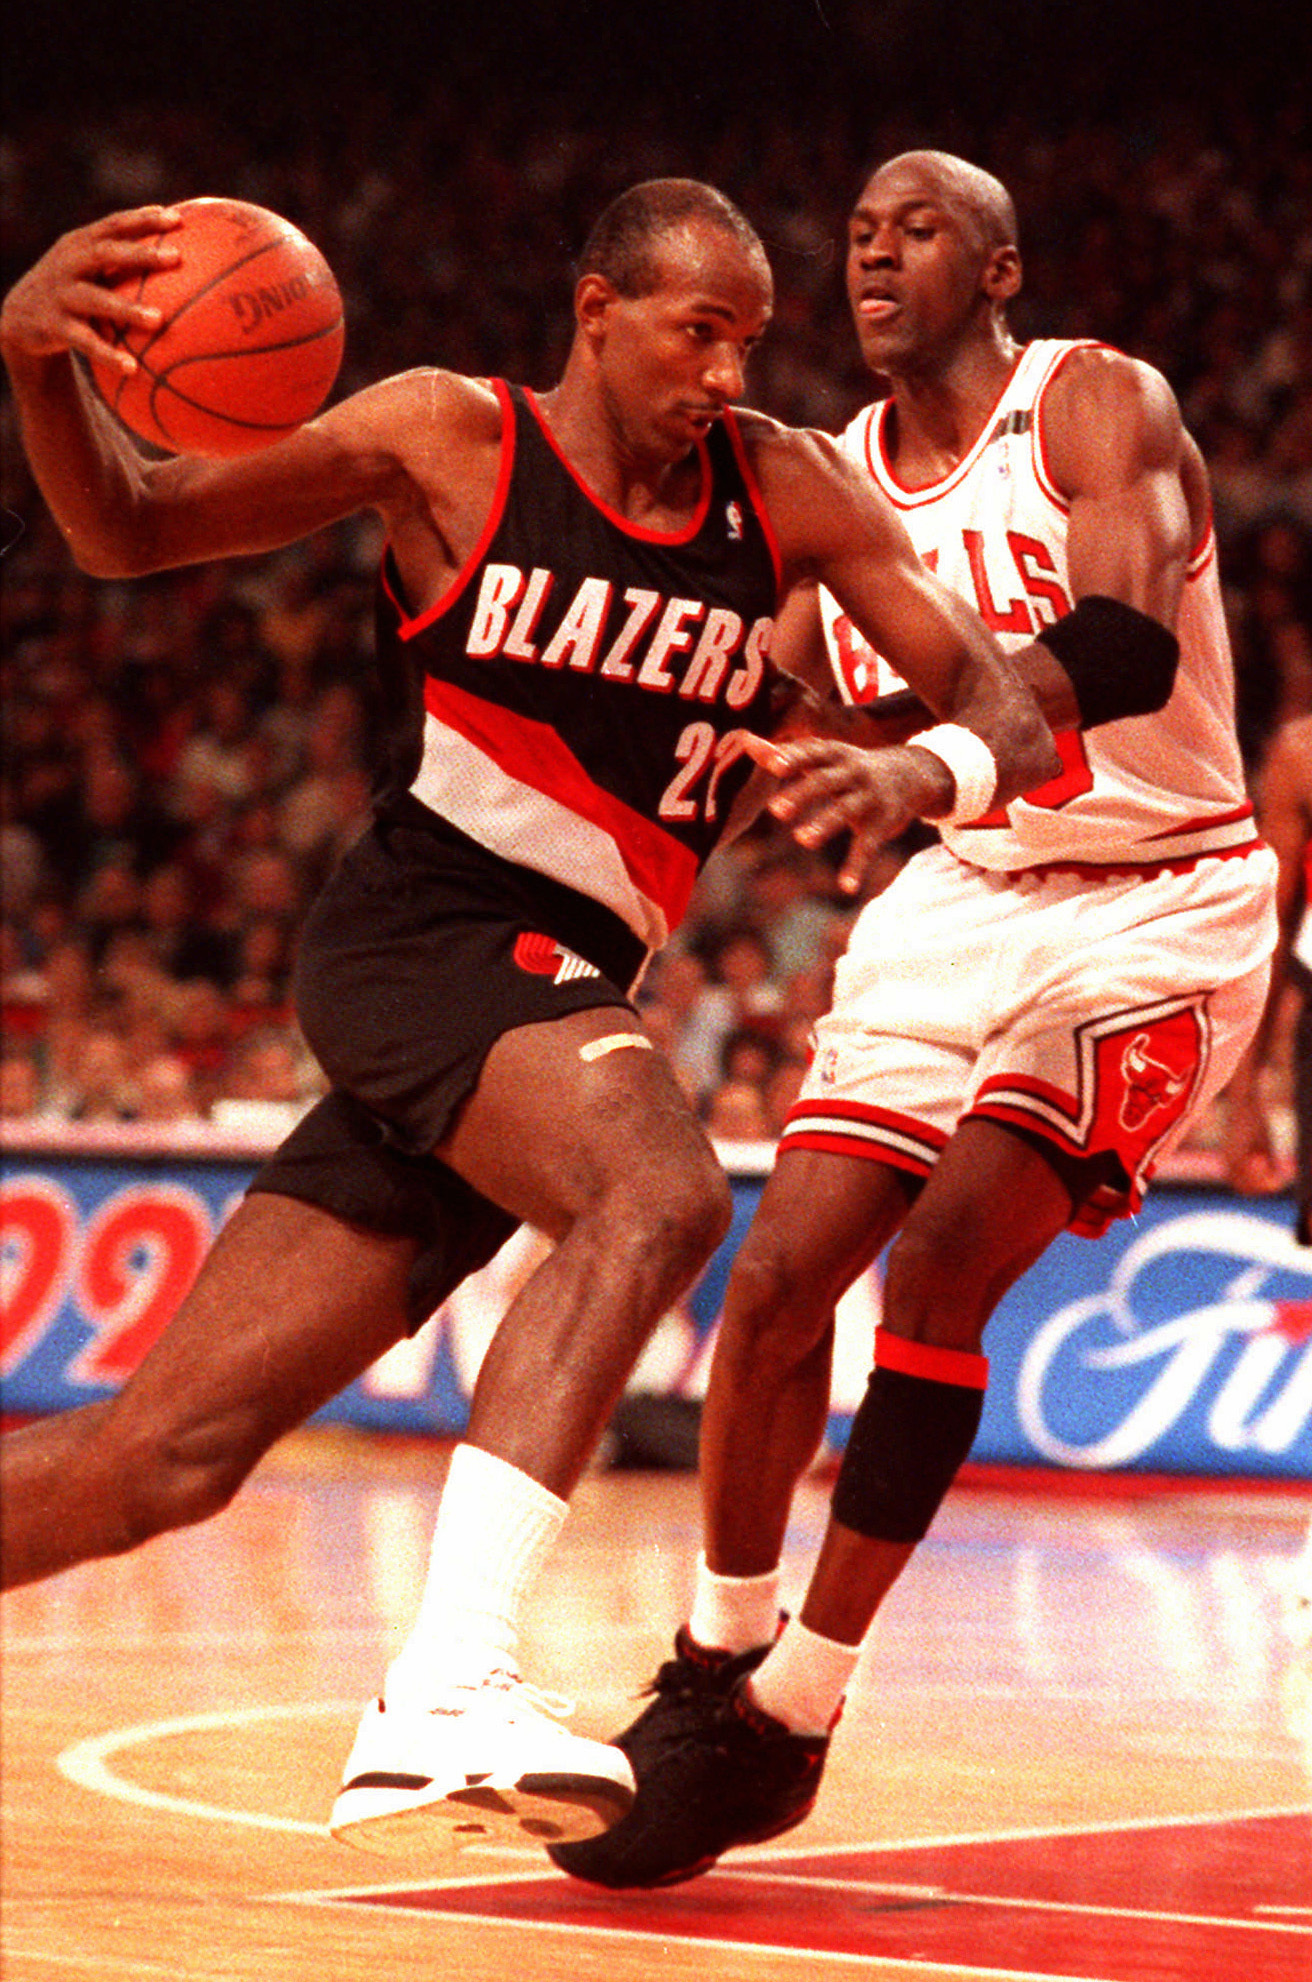 Had they become teammates in 1984, Clyde Drexler and Michael Jordan say they would have found a way to complement each other.